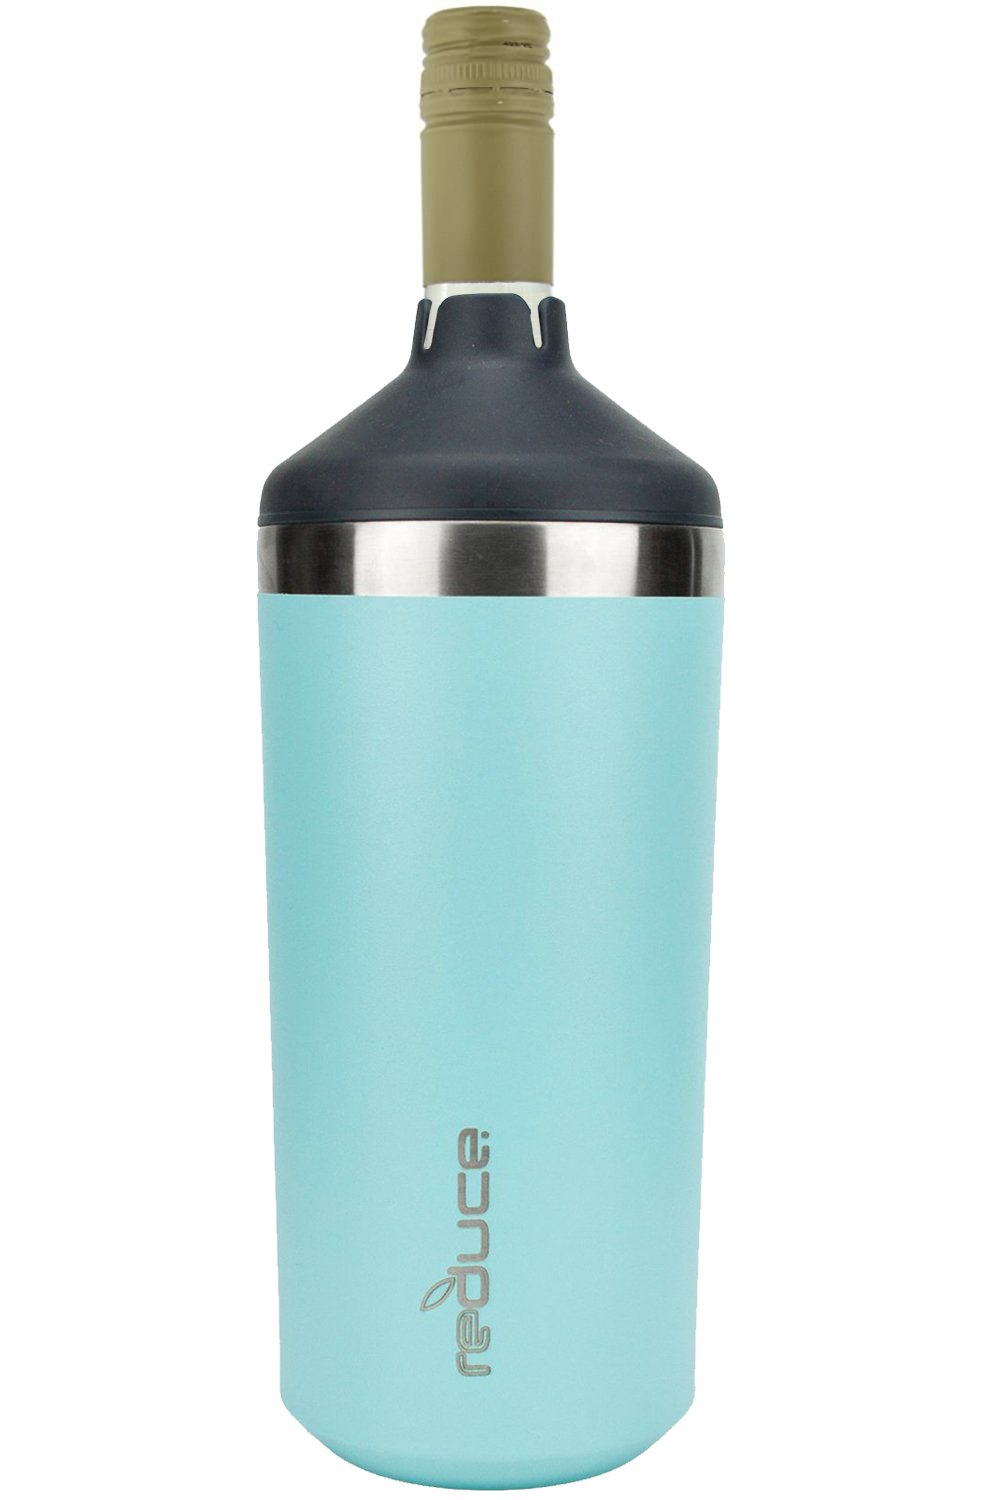 Portable Wine Bottle Cooler by REDUCE - Stainless Steel, Insulated Chiller to Keep Wine at the Perfect Temperature, No Ice Required - Ideal for Outdoor Summer Parties, Fits Most Wine Bottles - Mint